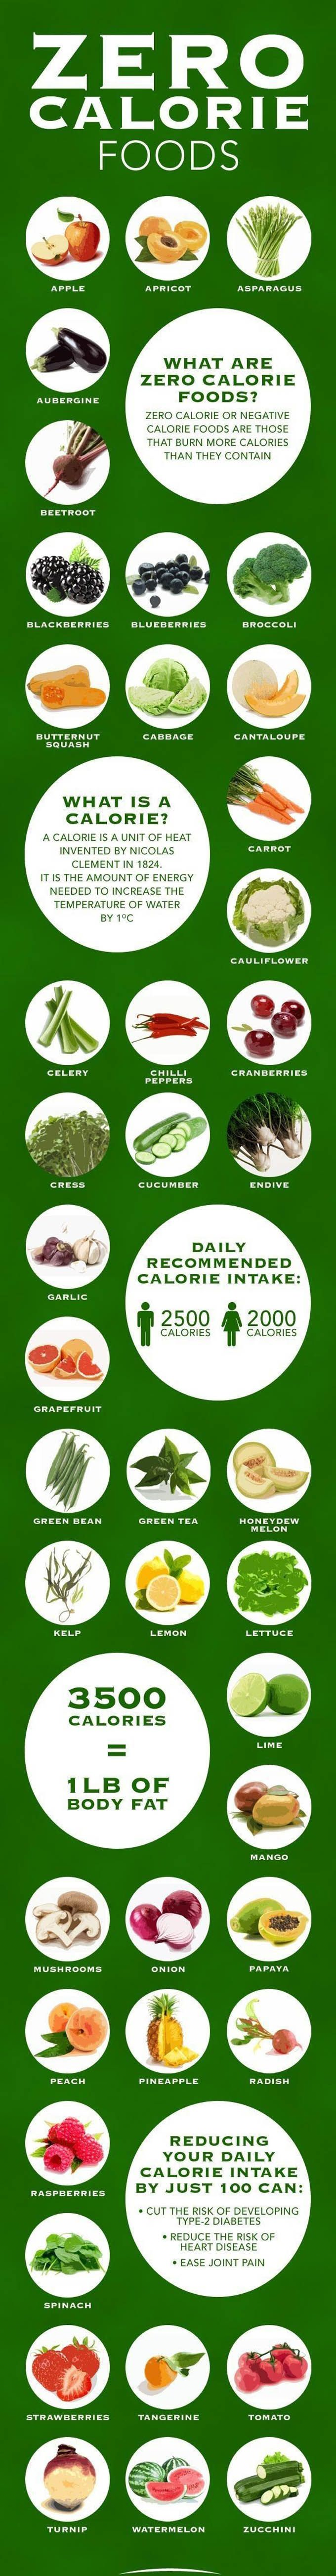 Zero calorie foods are those that burn more calories that they contain. So what foods fill you up but are low in calories? Check out this list of zero and